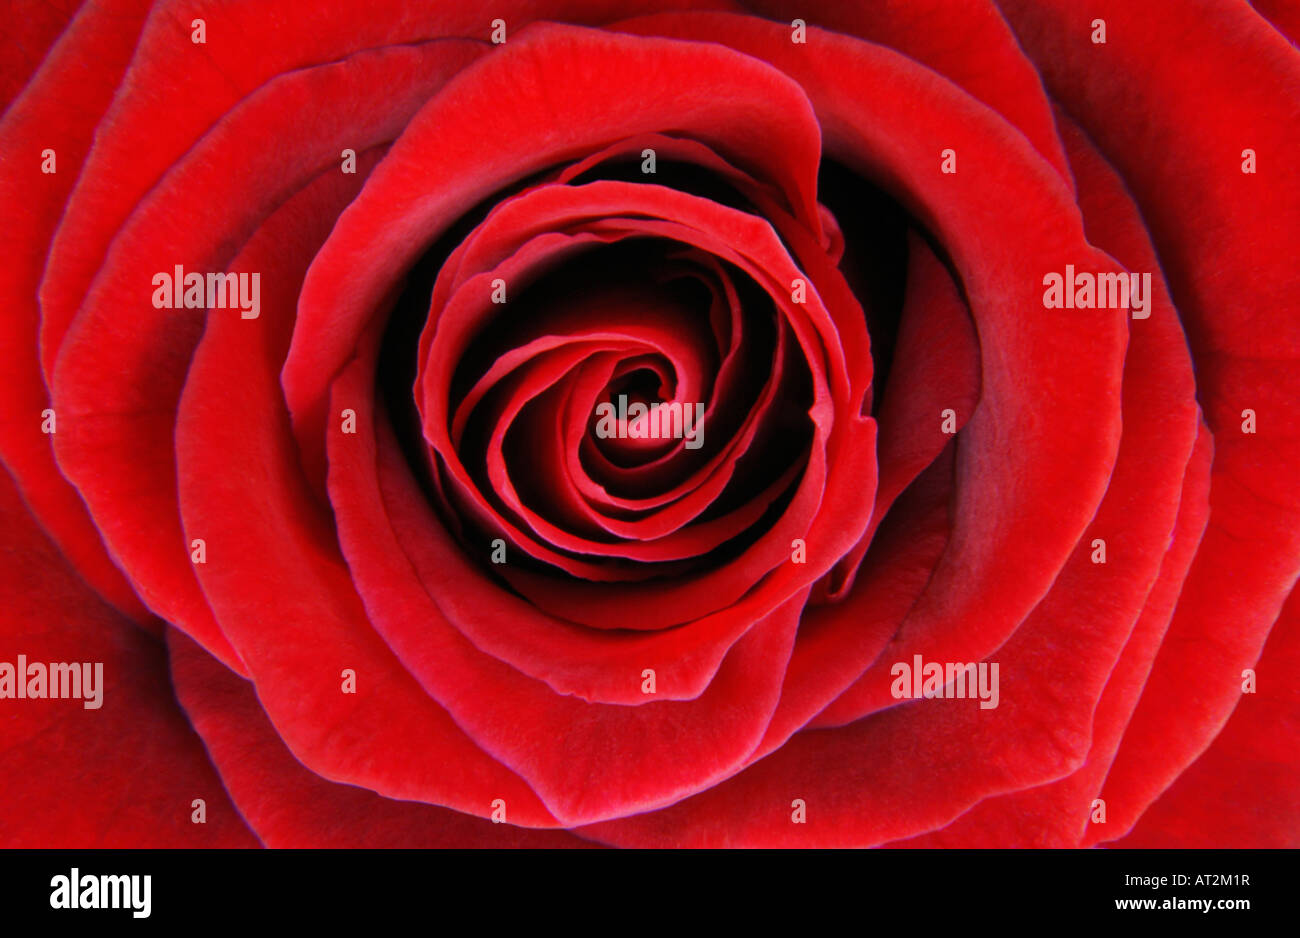 Red Rose close-up - Stock Image